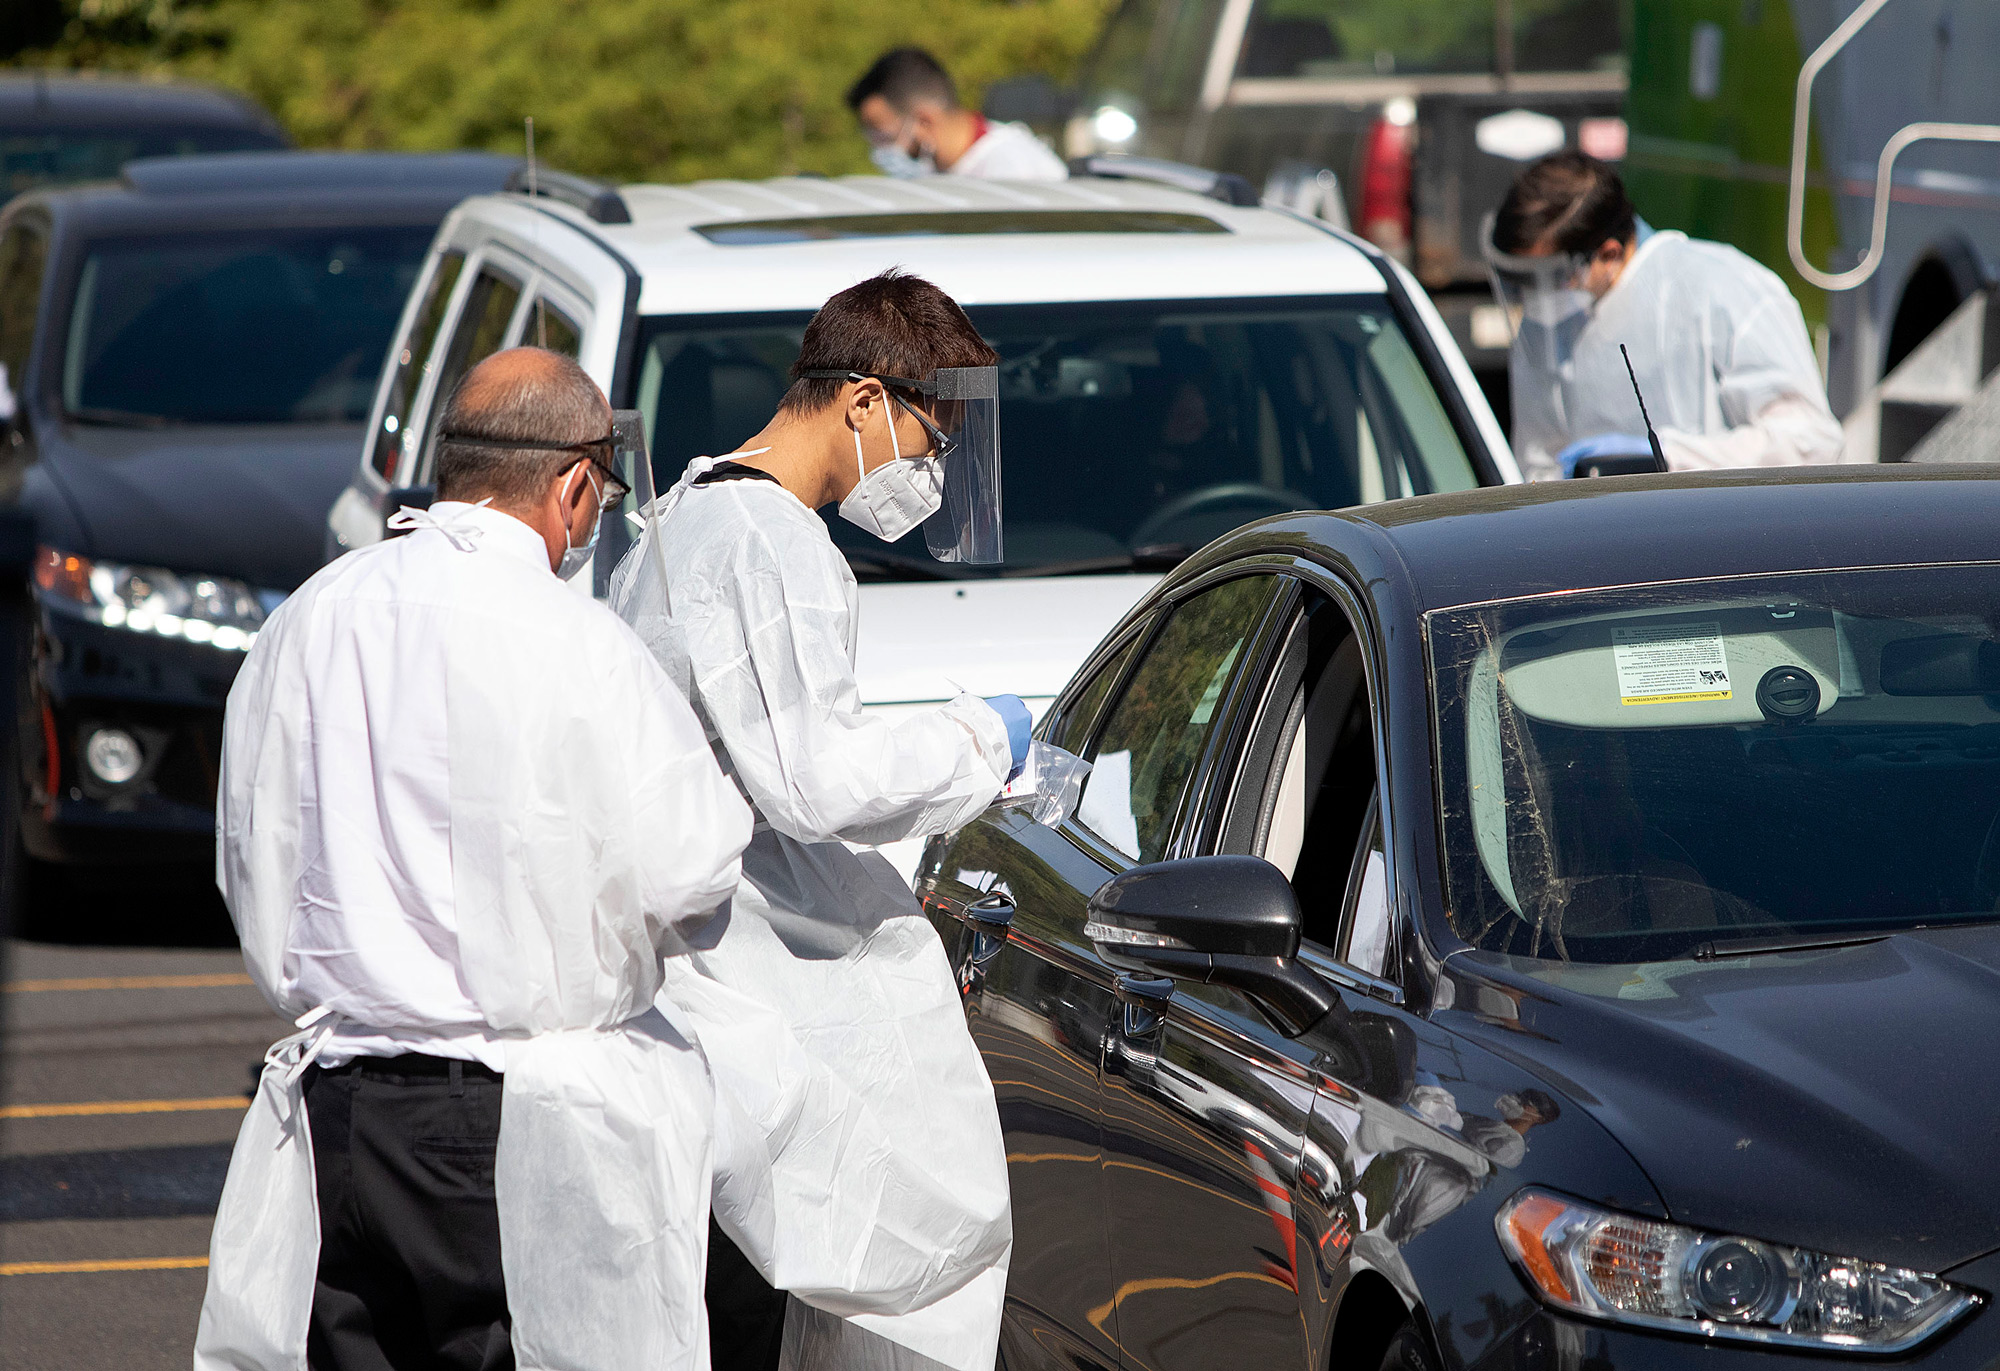 Faculty members from Washington State University Health Sciences Spokane administer COVID-19 tests to students at a mobile testing site on campus on September 2 in Pullman, Washington.